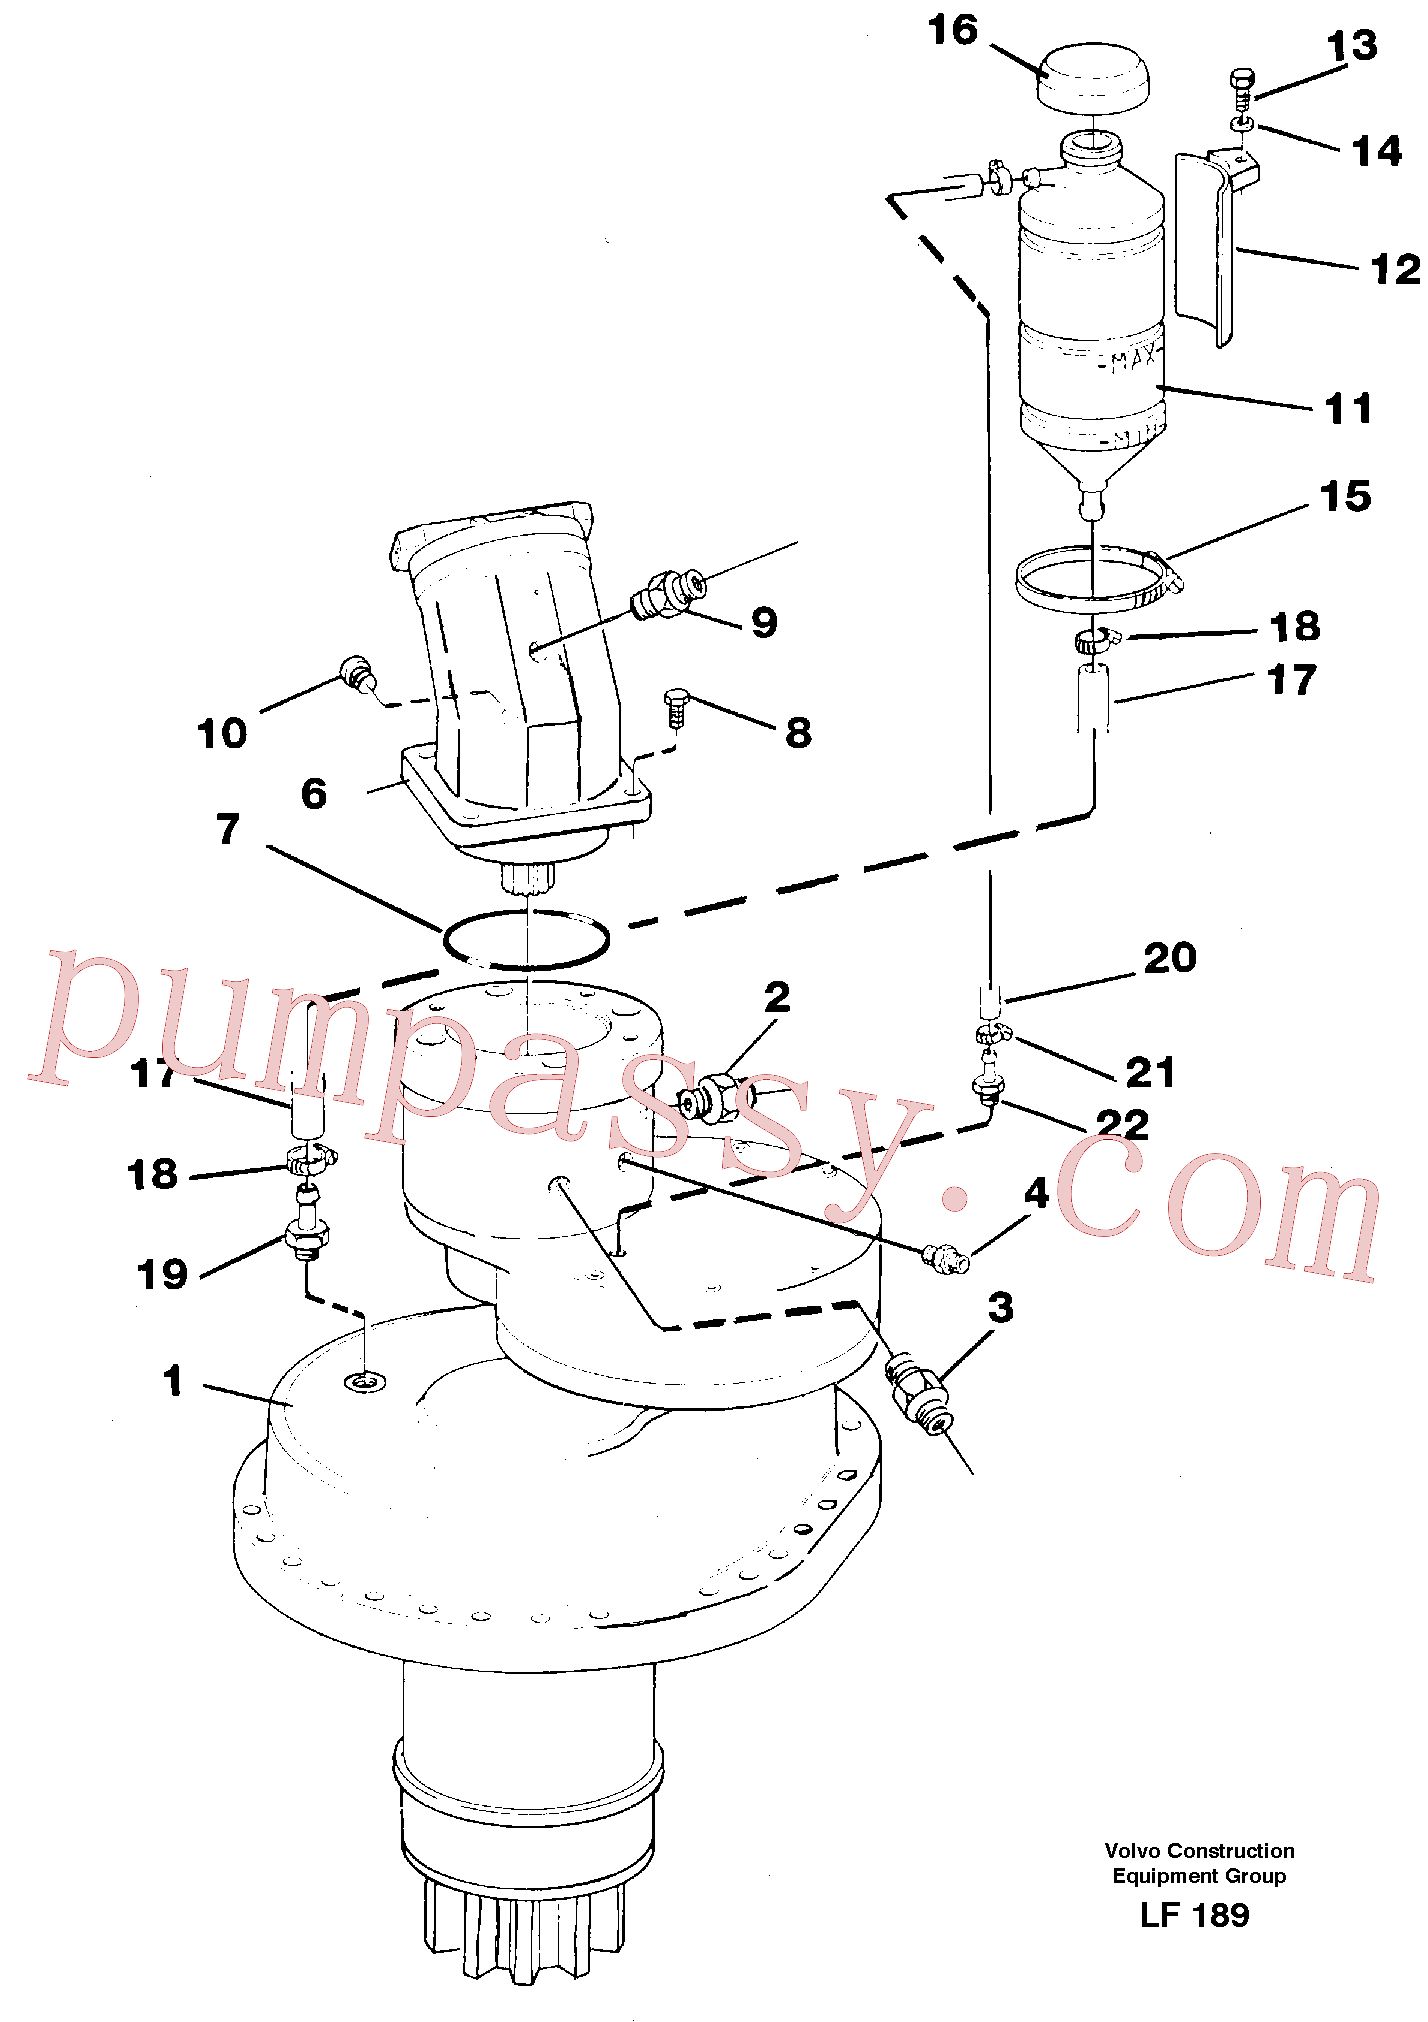 VOE14048501 for Volvo Slewing gear box, compl.(LF189 assembly)